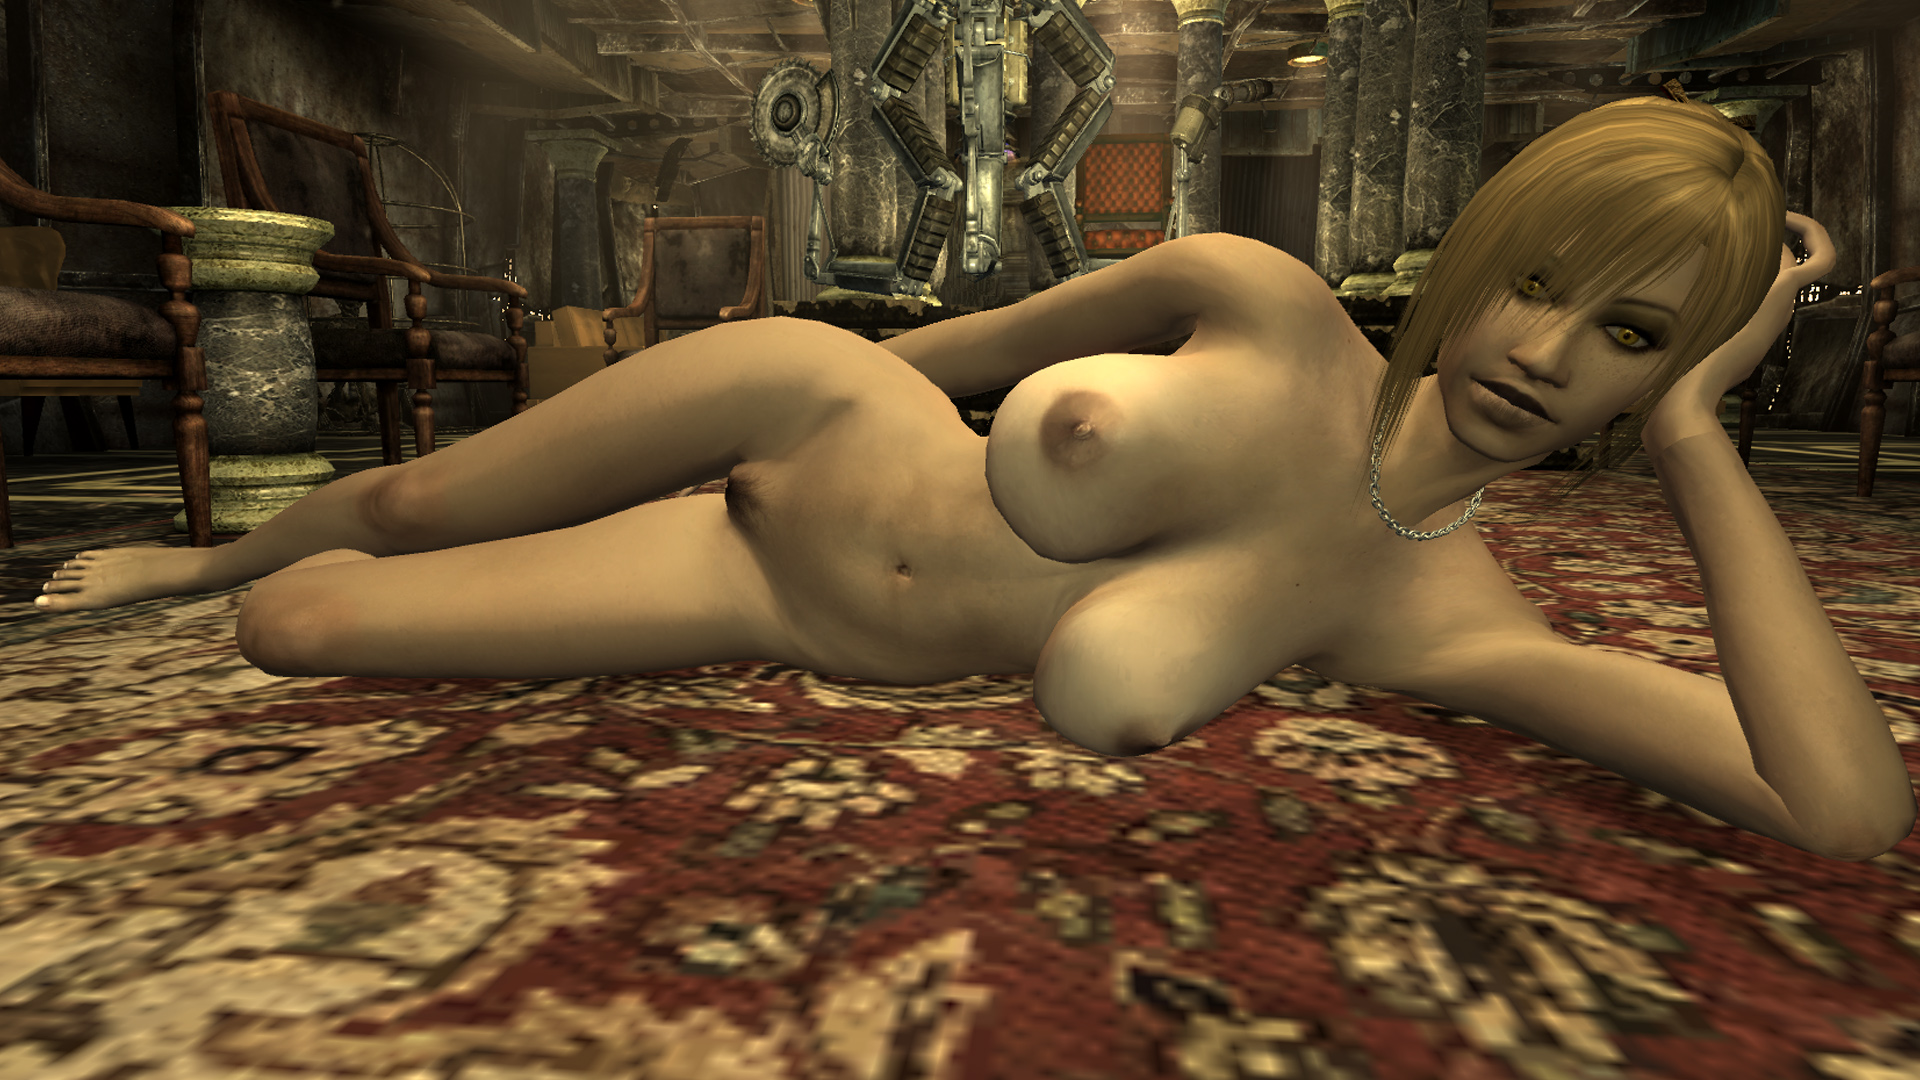 Nude mod for fallout 3 nackt movies